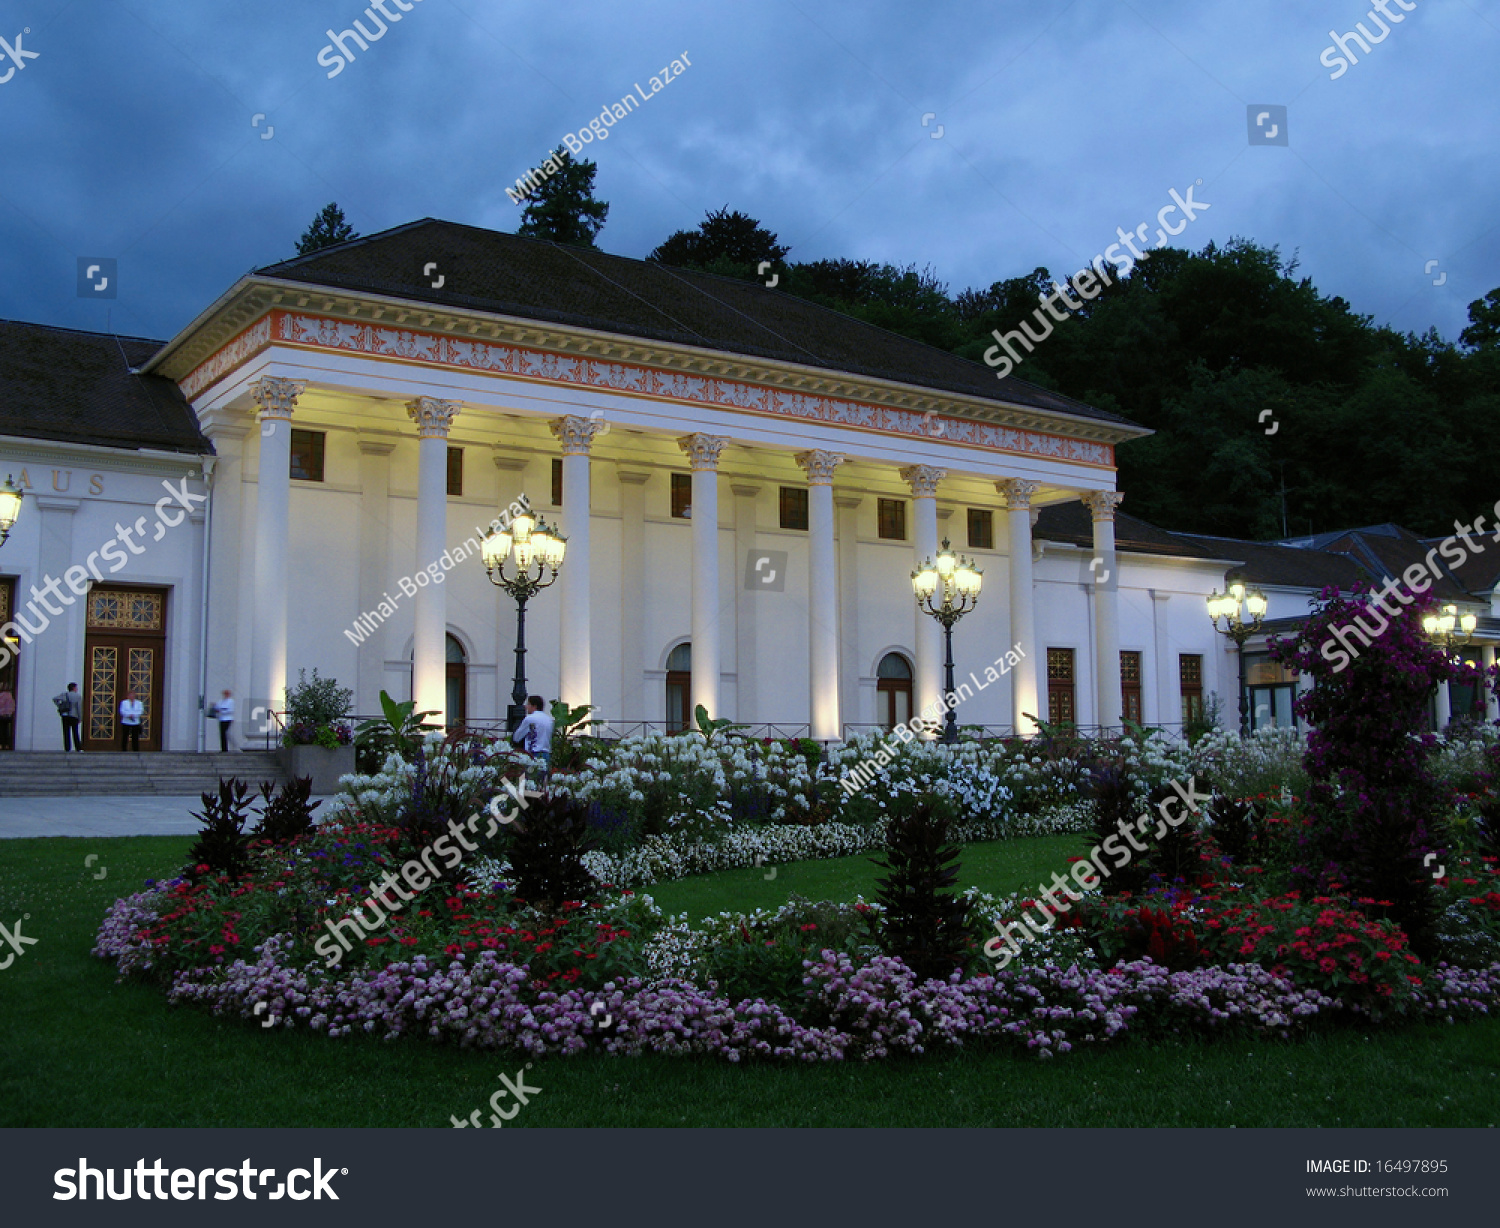 ladies night kurhaus baden-baden